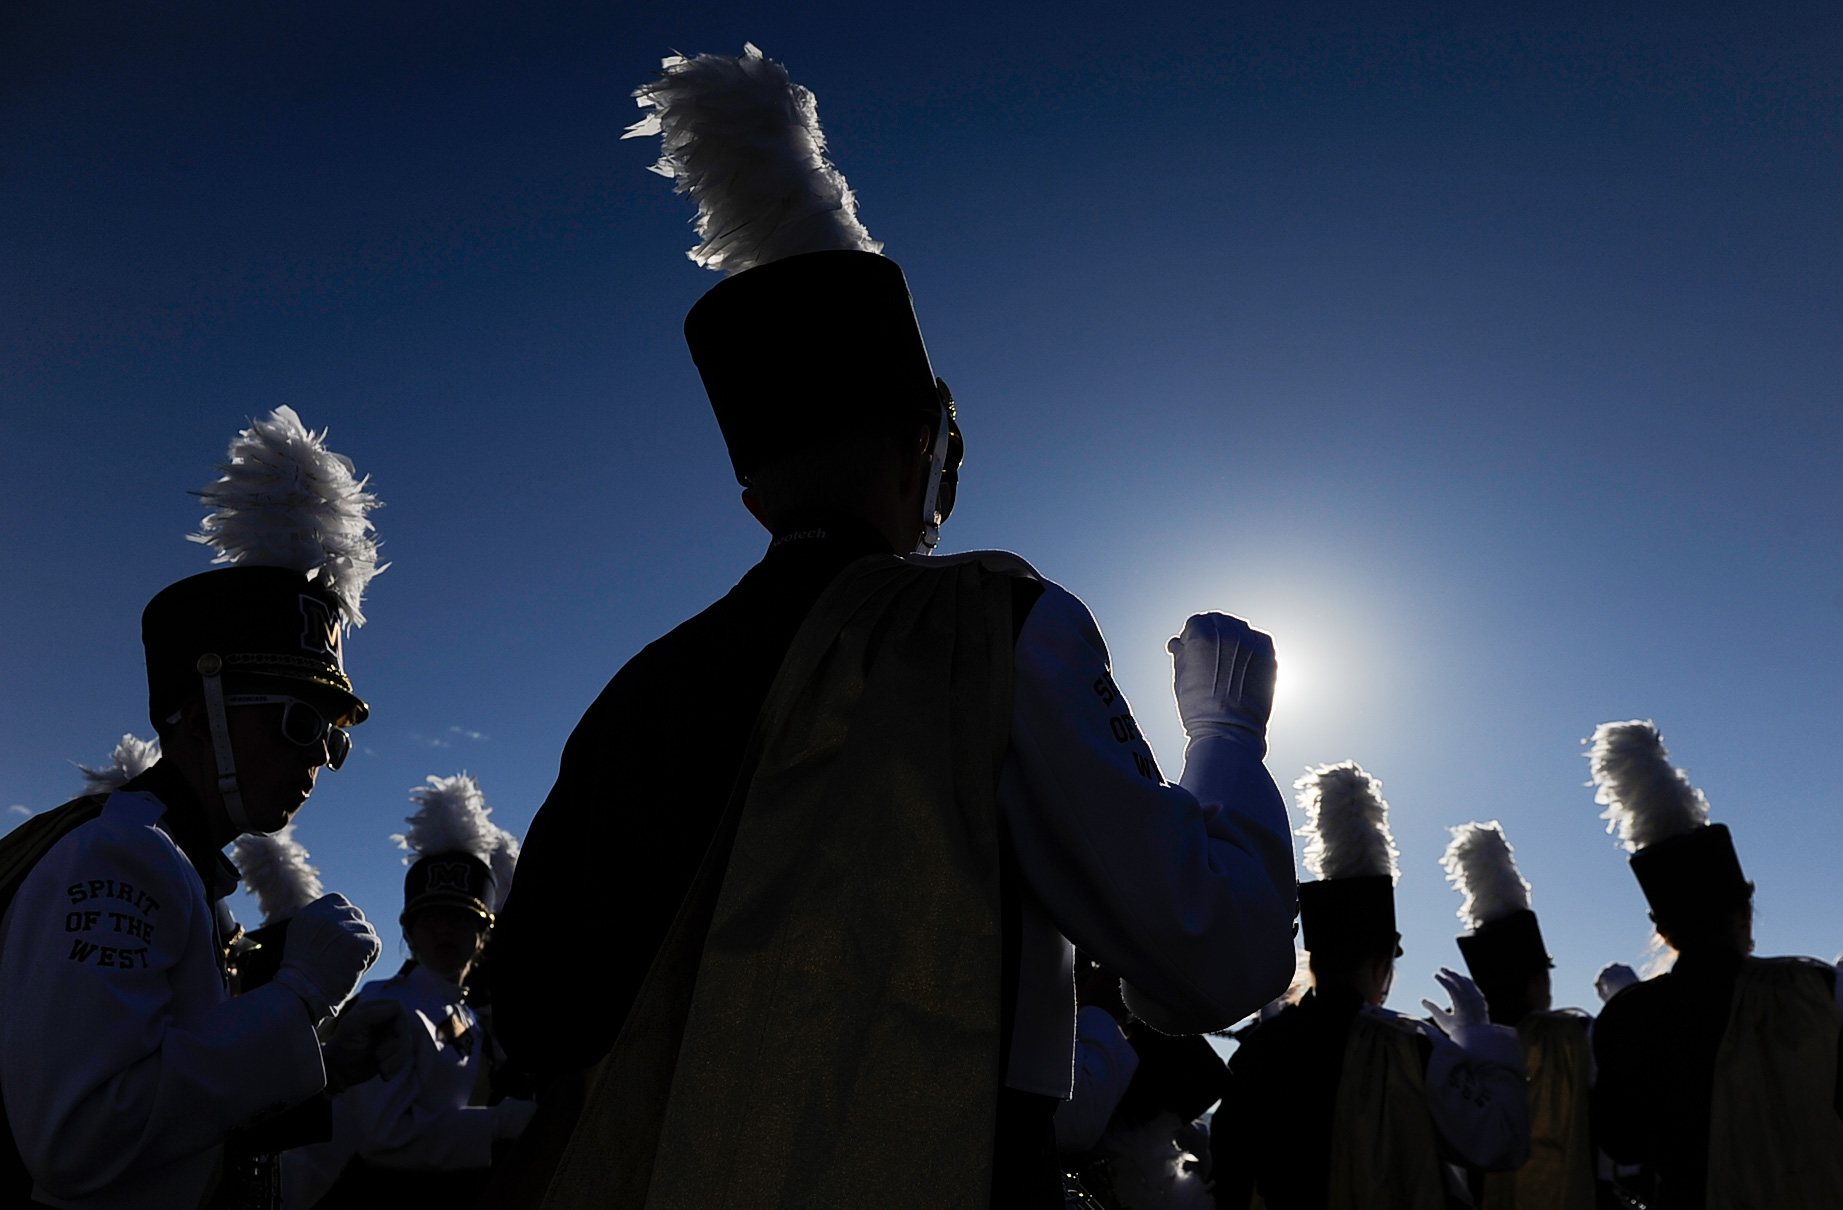 The Montana State Spirit of the West Marching band warms up prior to the start of an NCAA college football game in Bozeman, Mont. Saturday, Oct. 07, 2017.